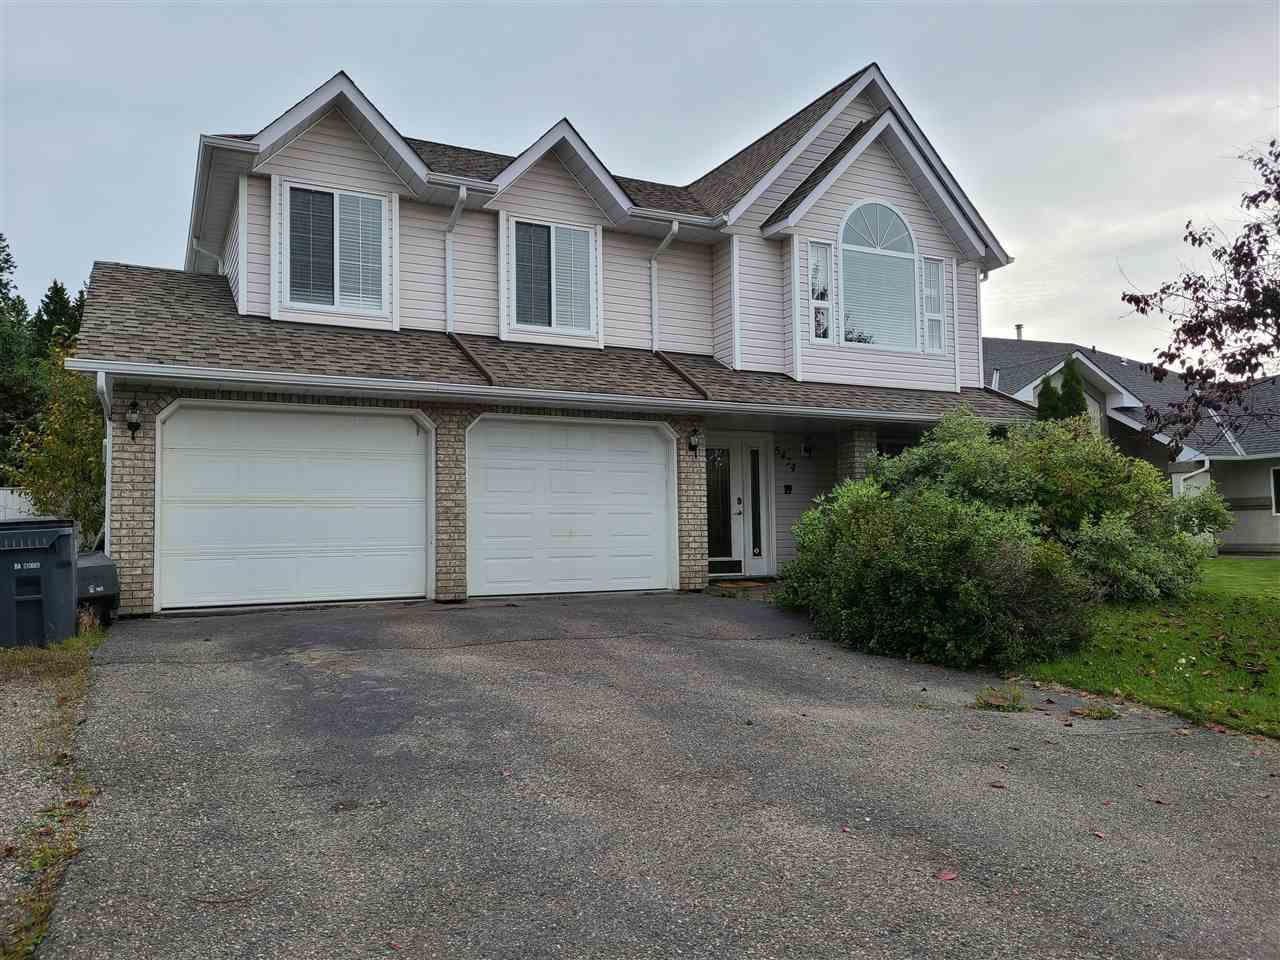 Main Photo: 5474 HEYER Road in Prince George: Haldi House for sale (PG City South (Zone 74))  : MLS®# R2499087